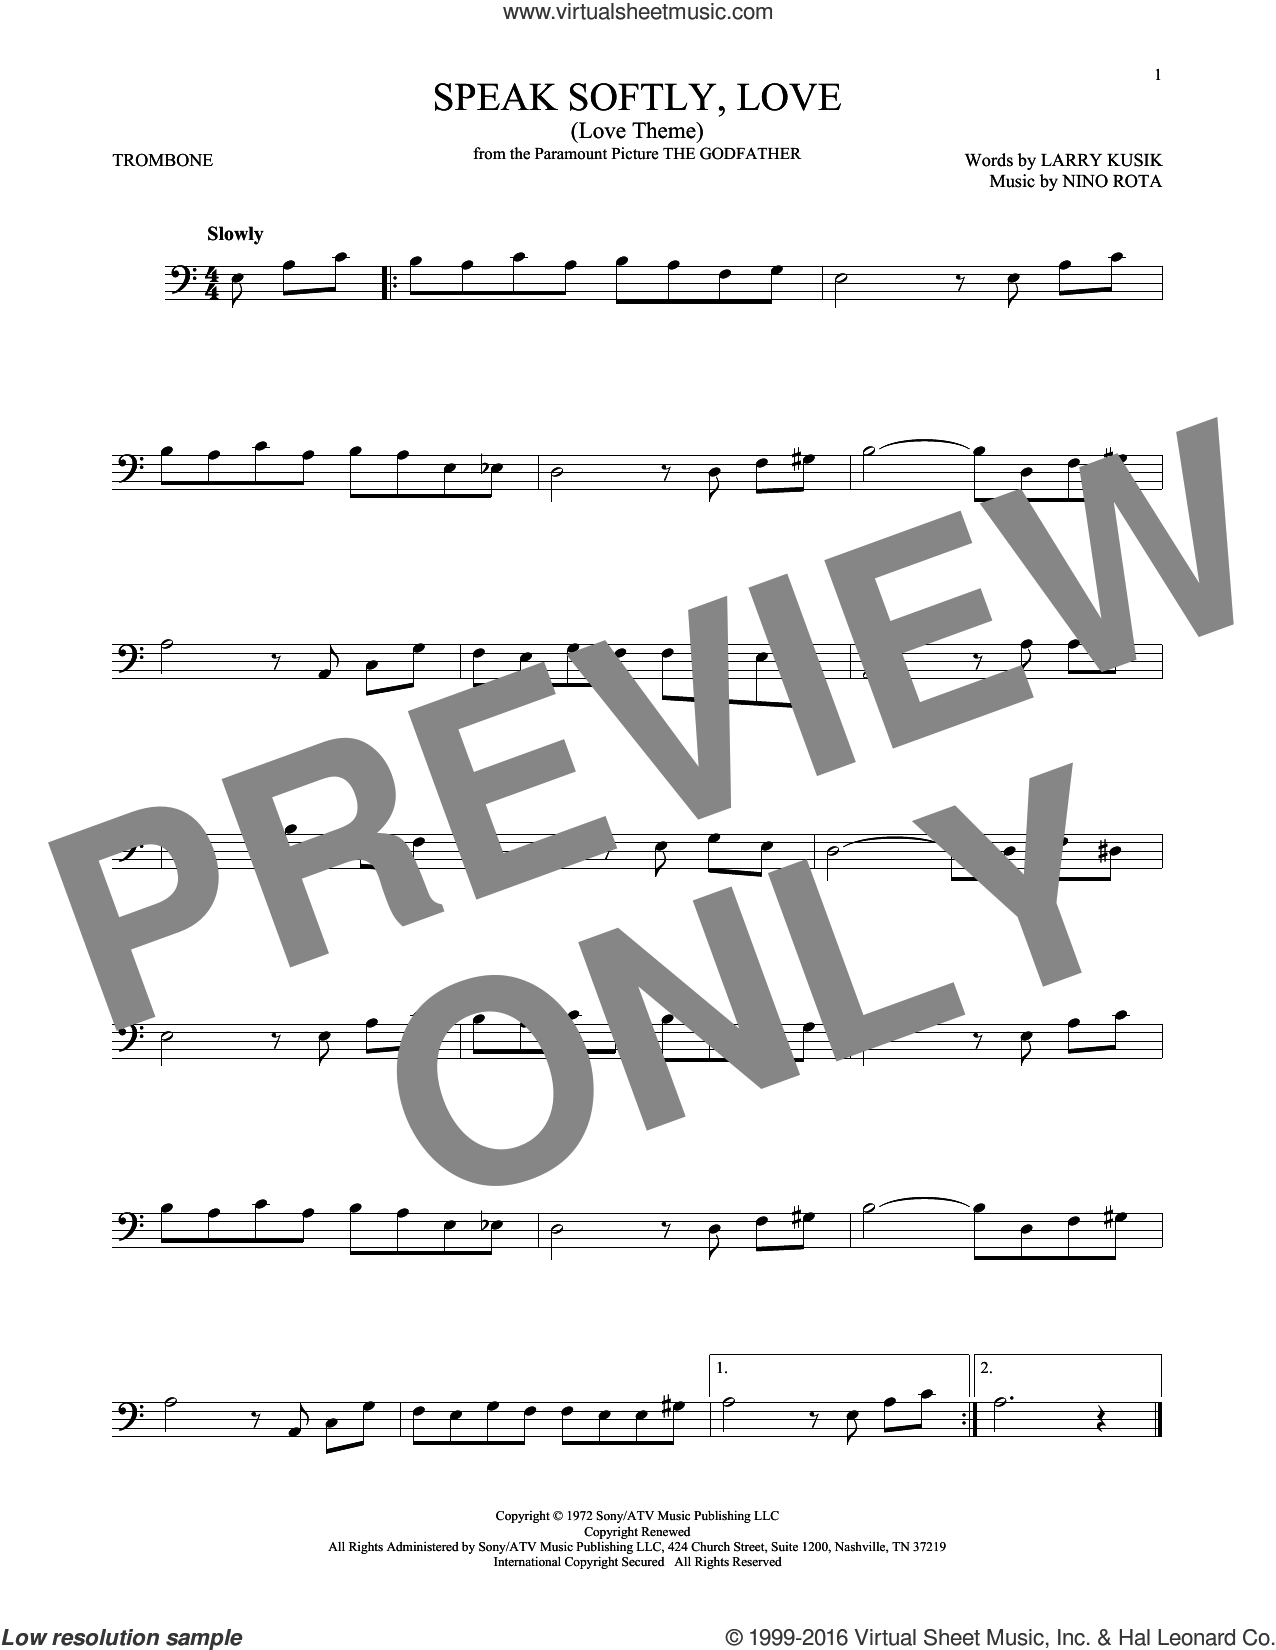 Speak Softly, Love (Love Theme) sheet music for trombone solo by Andy Williams, Larry Kusik and Nino Rota, intermediate skill level